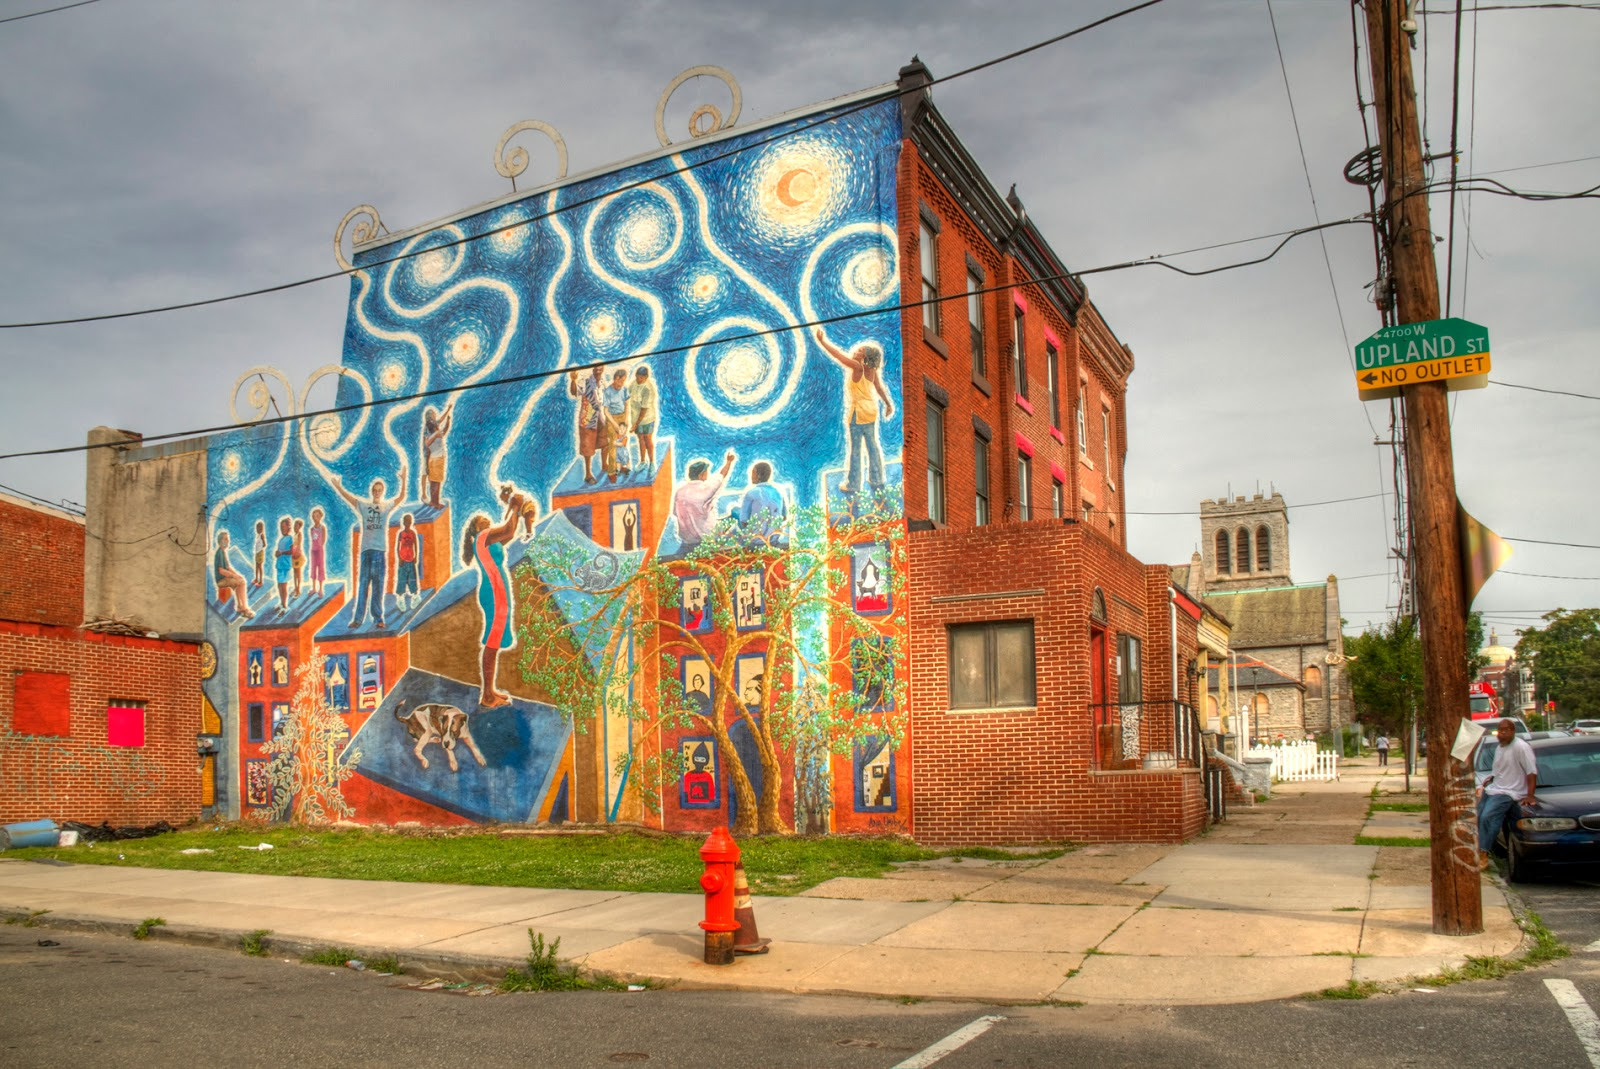 josh friedman photography beautiful walls in the inner city 2 magic wall mural artist ana uribe 47th st and upland st near woodland ave